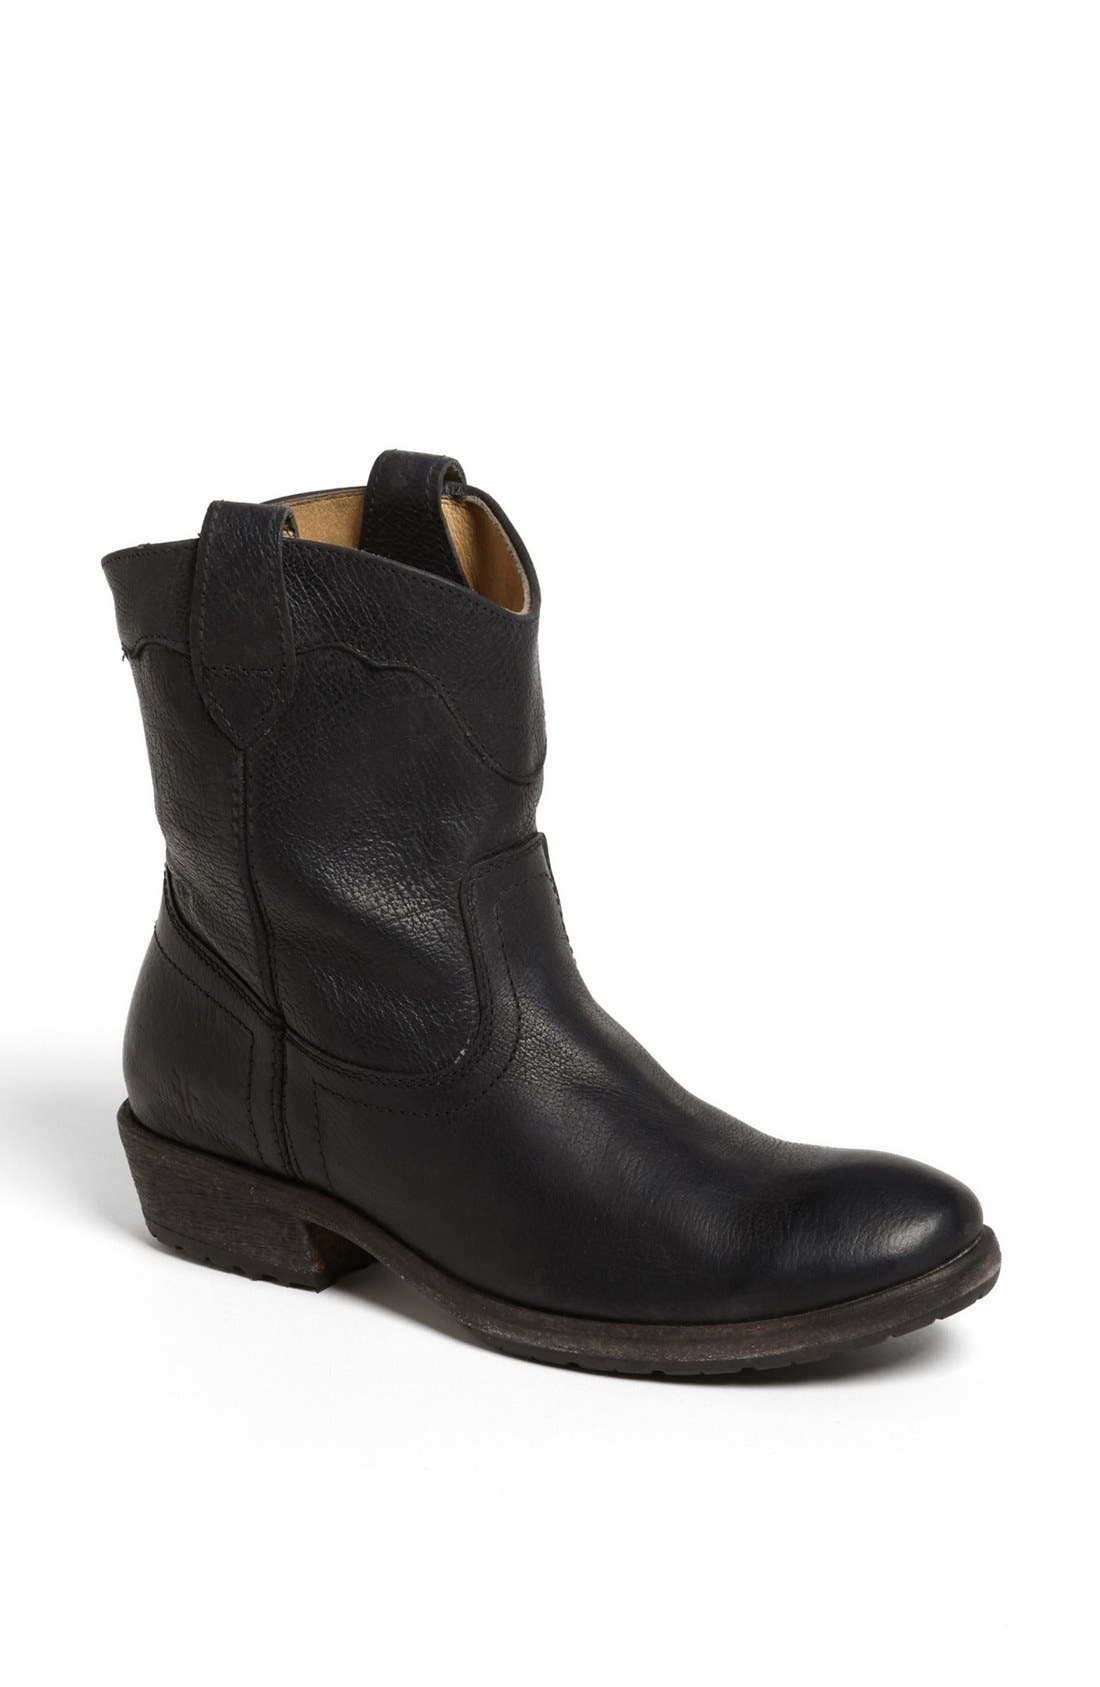 Alternate Image 1 Selected - Frye 'Carson Lug' Short Boot